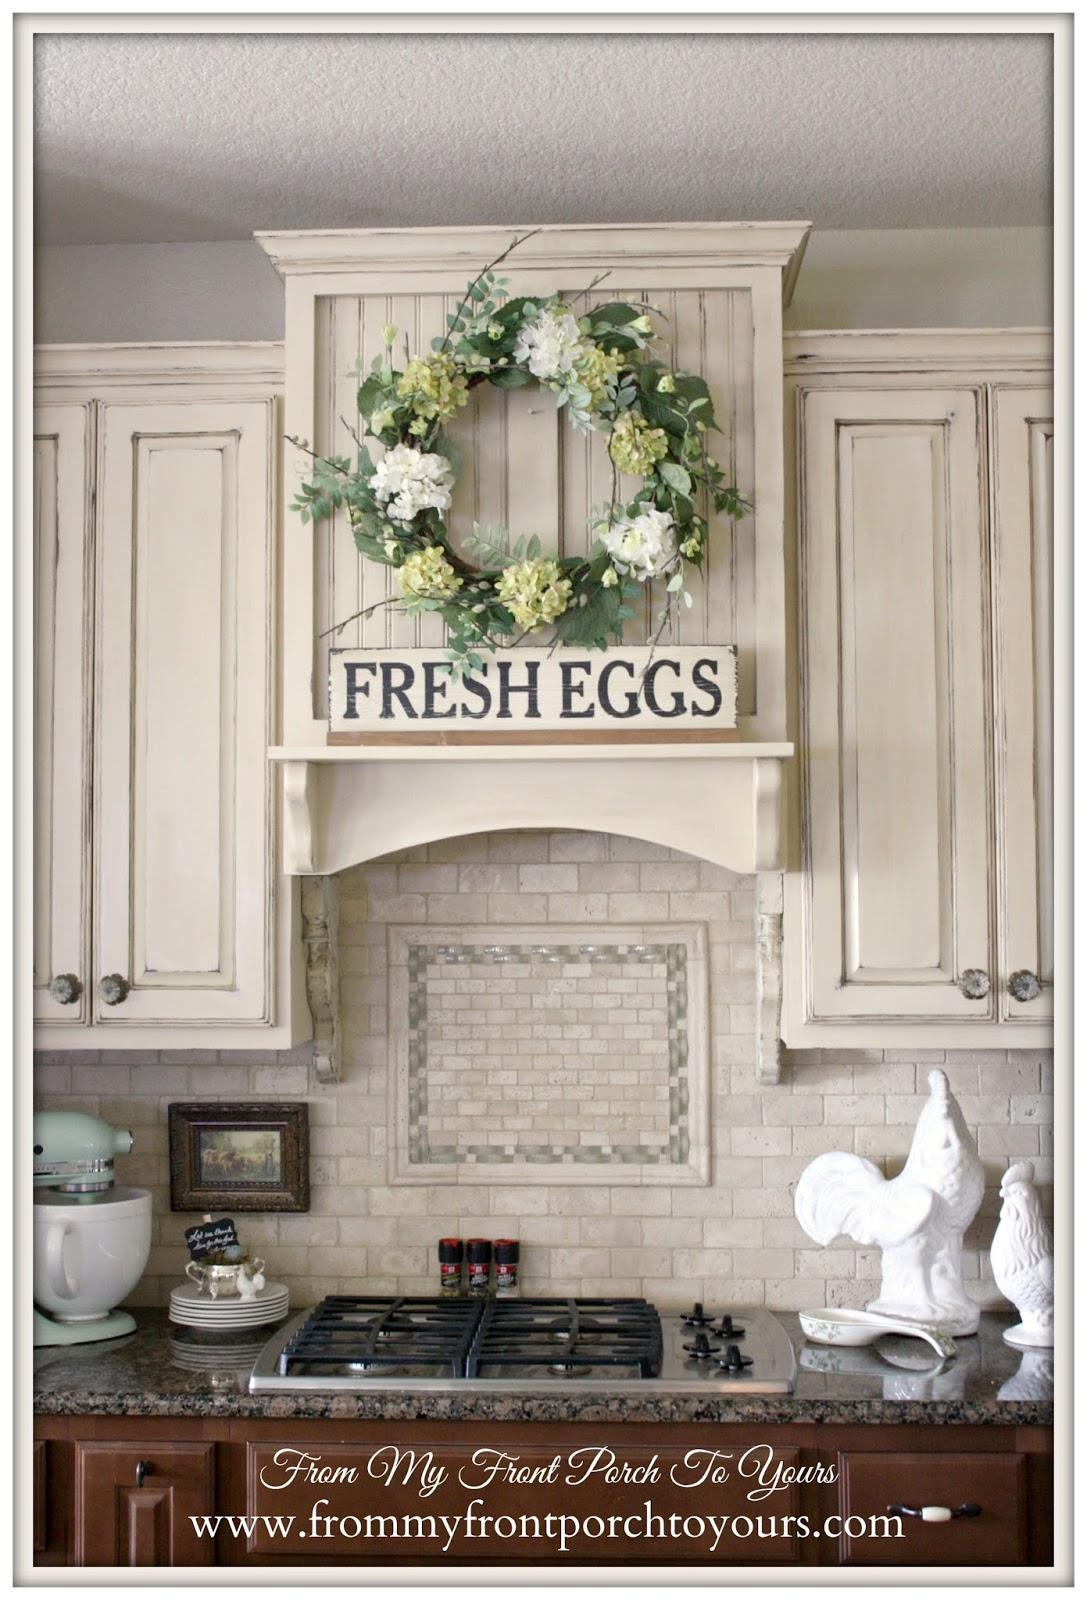 From My Front Porch To Yours: French Farmhouse Kitchen Sources